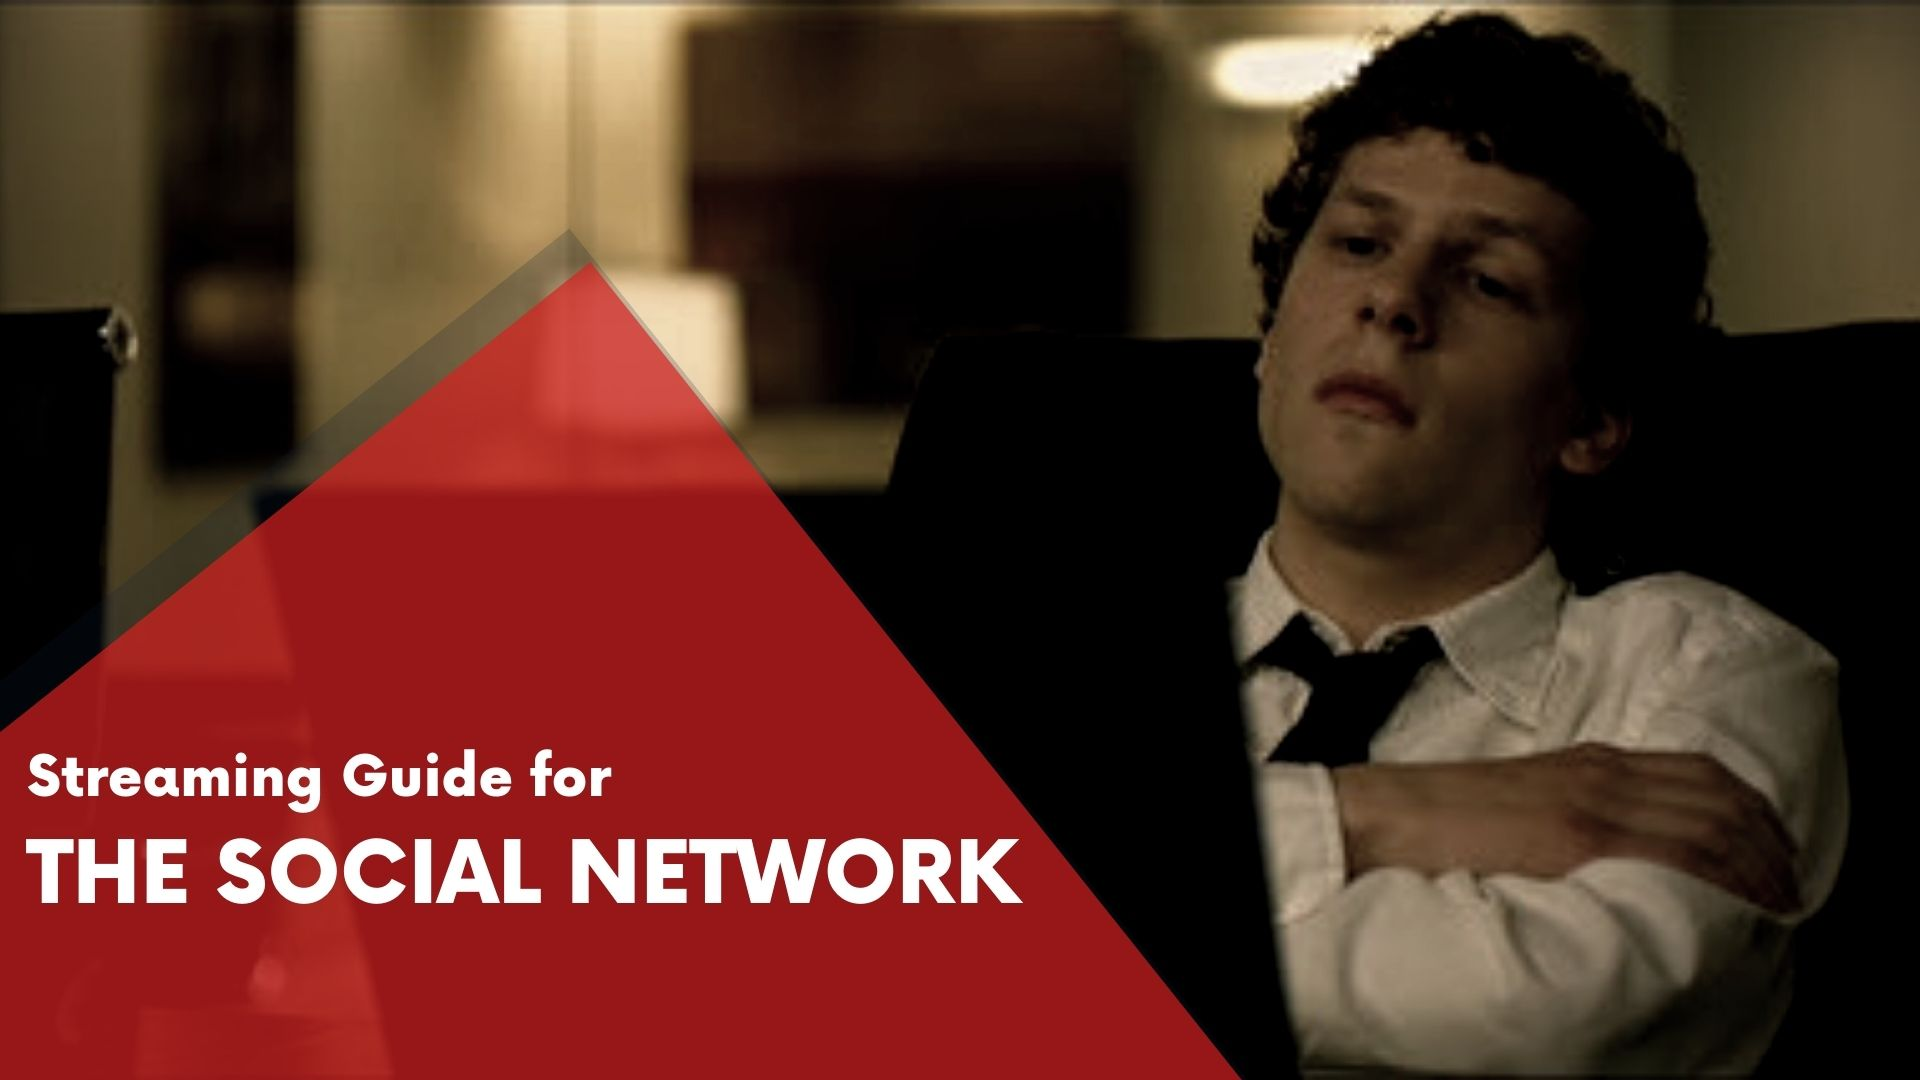 Answering if The Social Network can be watched online on Hulu